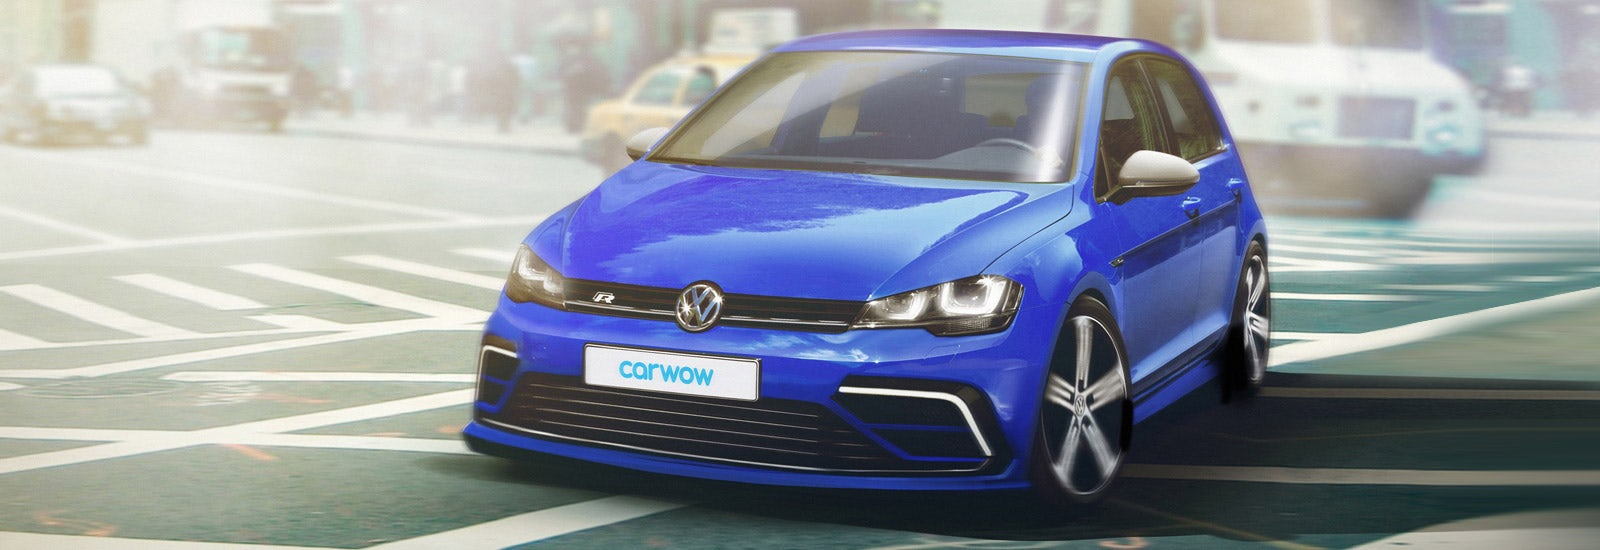 New bmw 8 series price specs release date carwow - 2019 New Vw Golf R Mk8 Render By Carwow